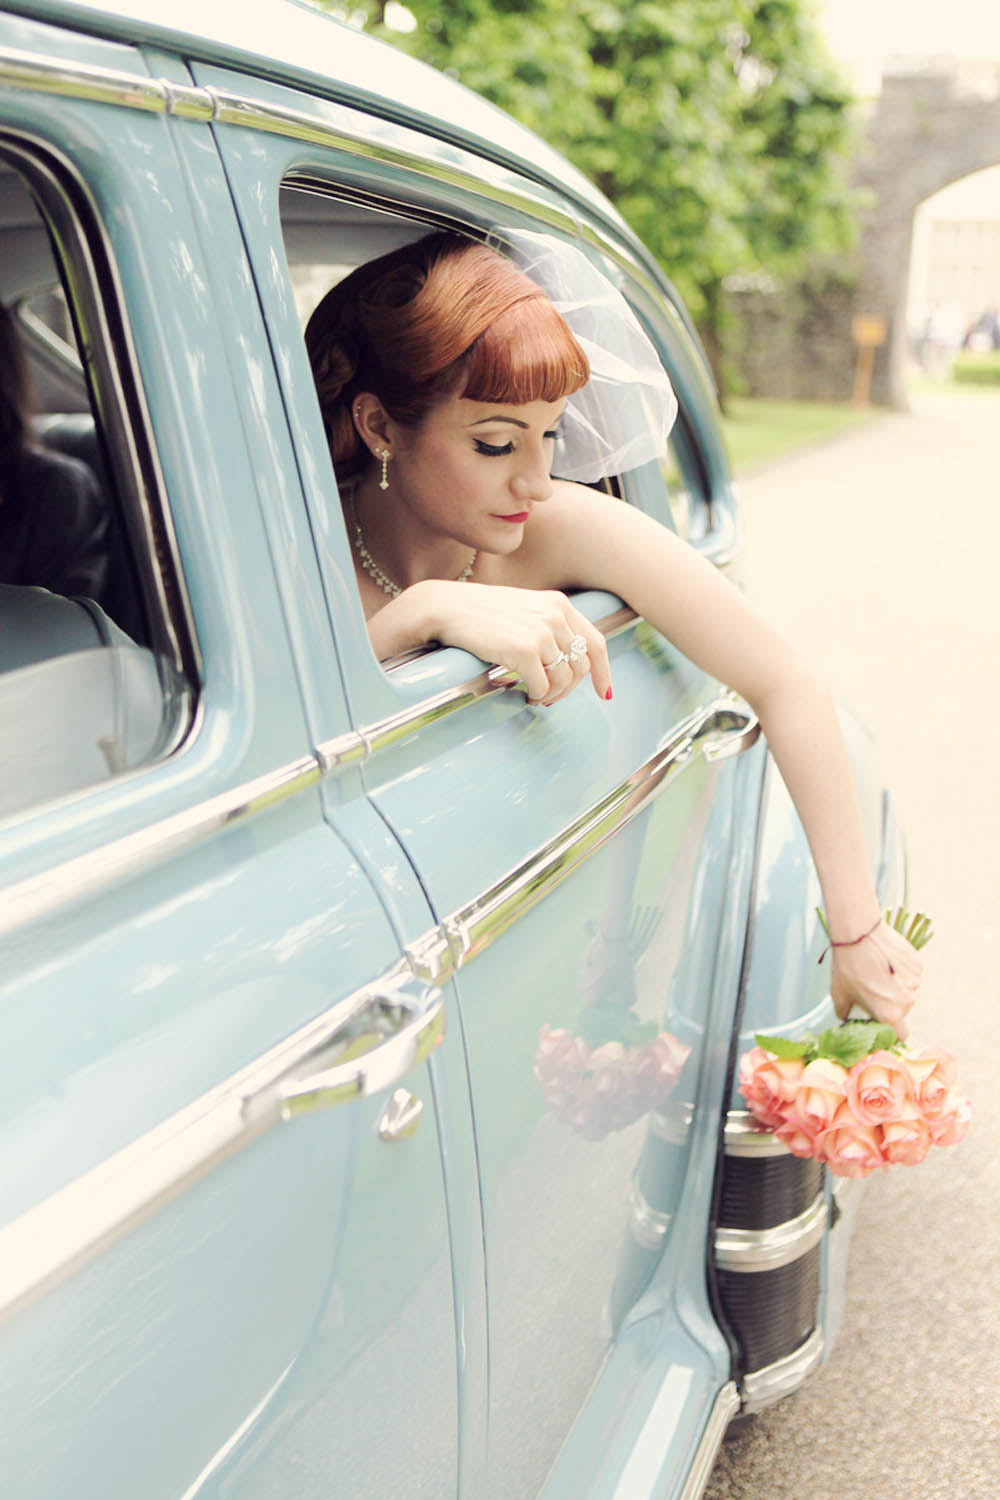 Pose Of Close-up Bridal Features Inside A Classic Car